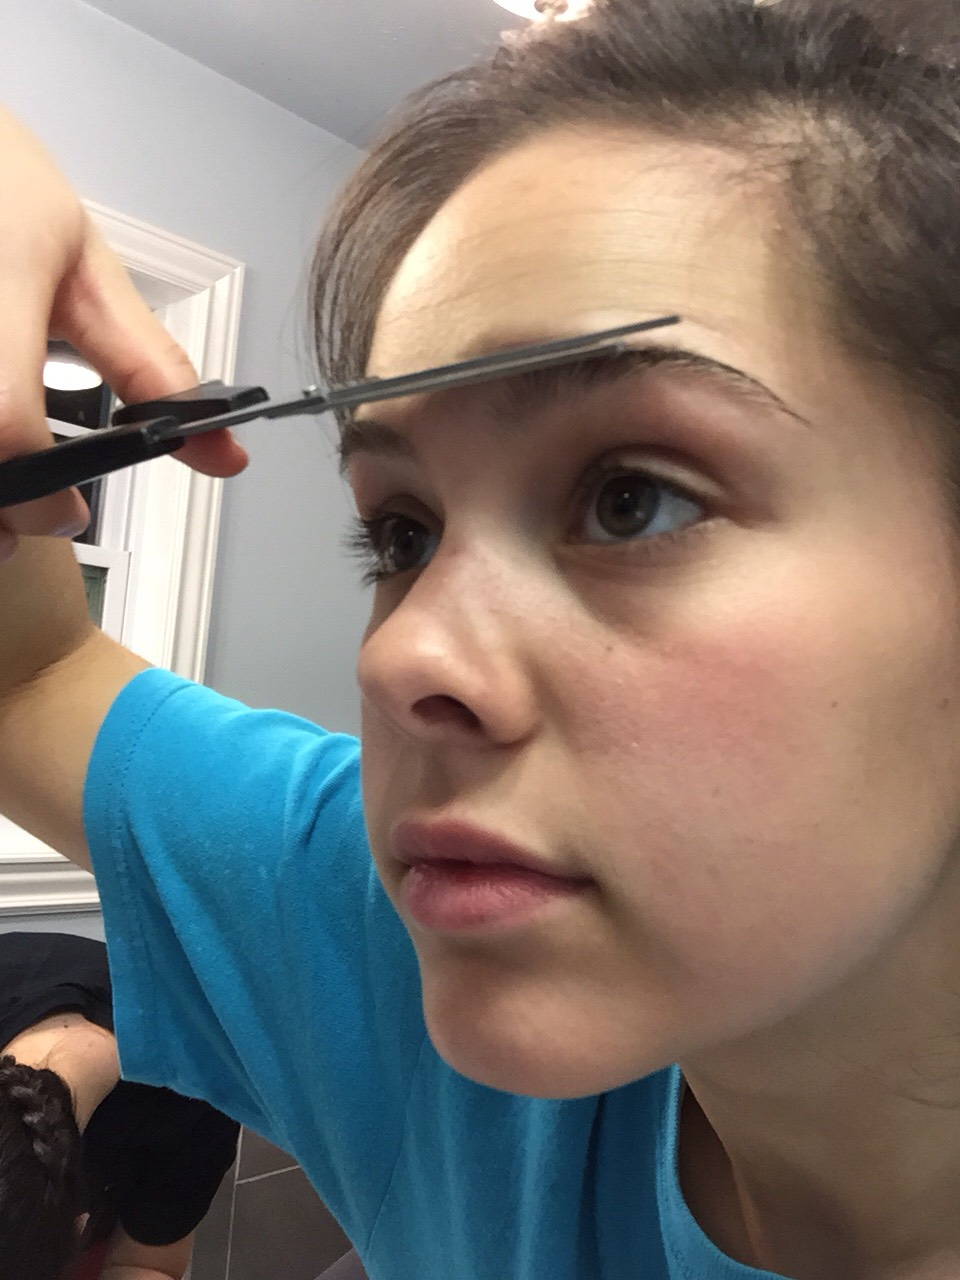 """Step 2: Start by brushing your brows upward and clipping the stray strands or simply cutting down your eyebrows to the shape you want. If you are nervous at first, just start with a simple """"clean up"""" job. Only focus on getting rid of stray hairs and not truly shaping your brows yet."""